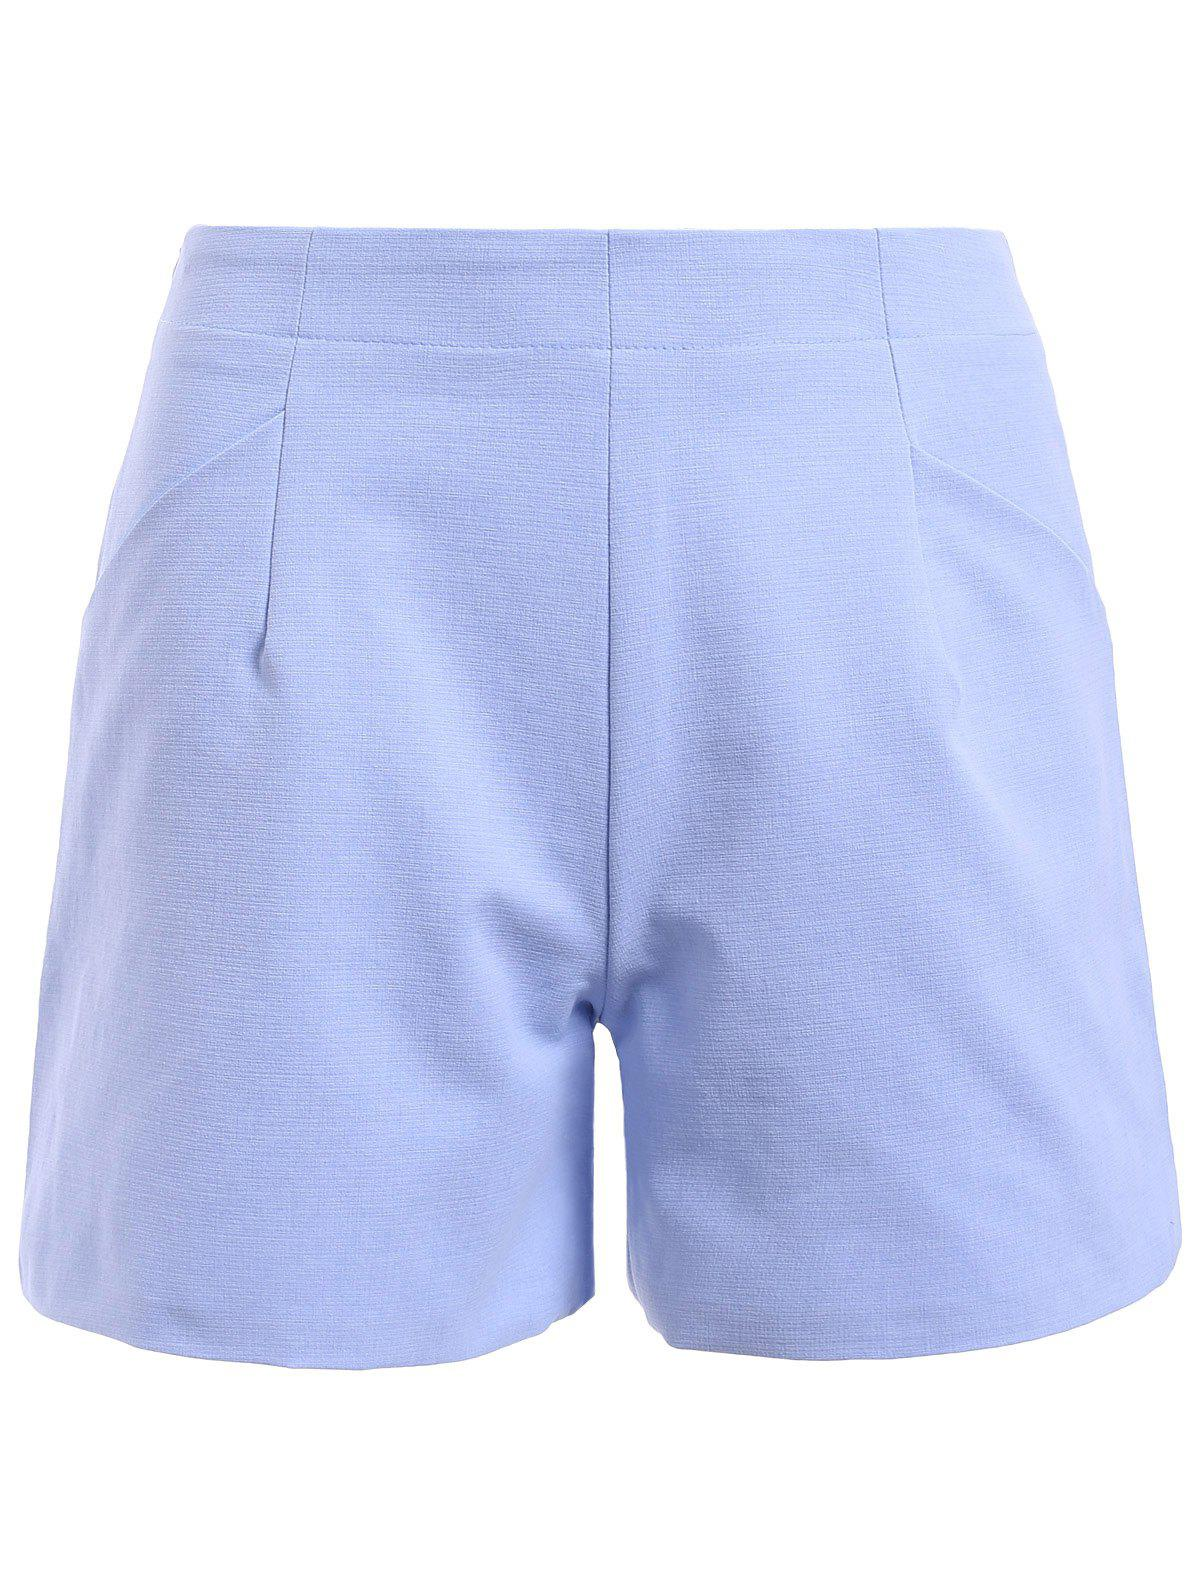 Slimming Women's High-Waisted A-line Shorts